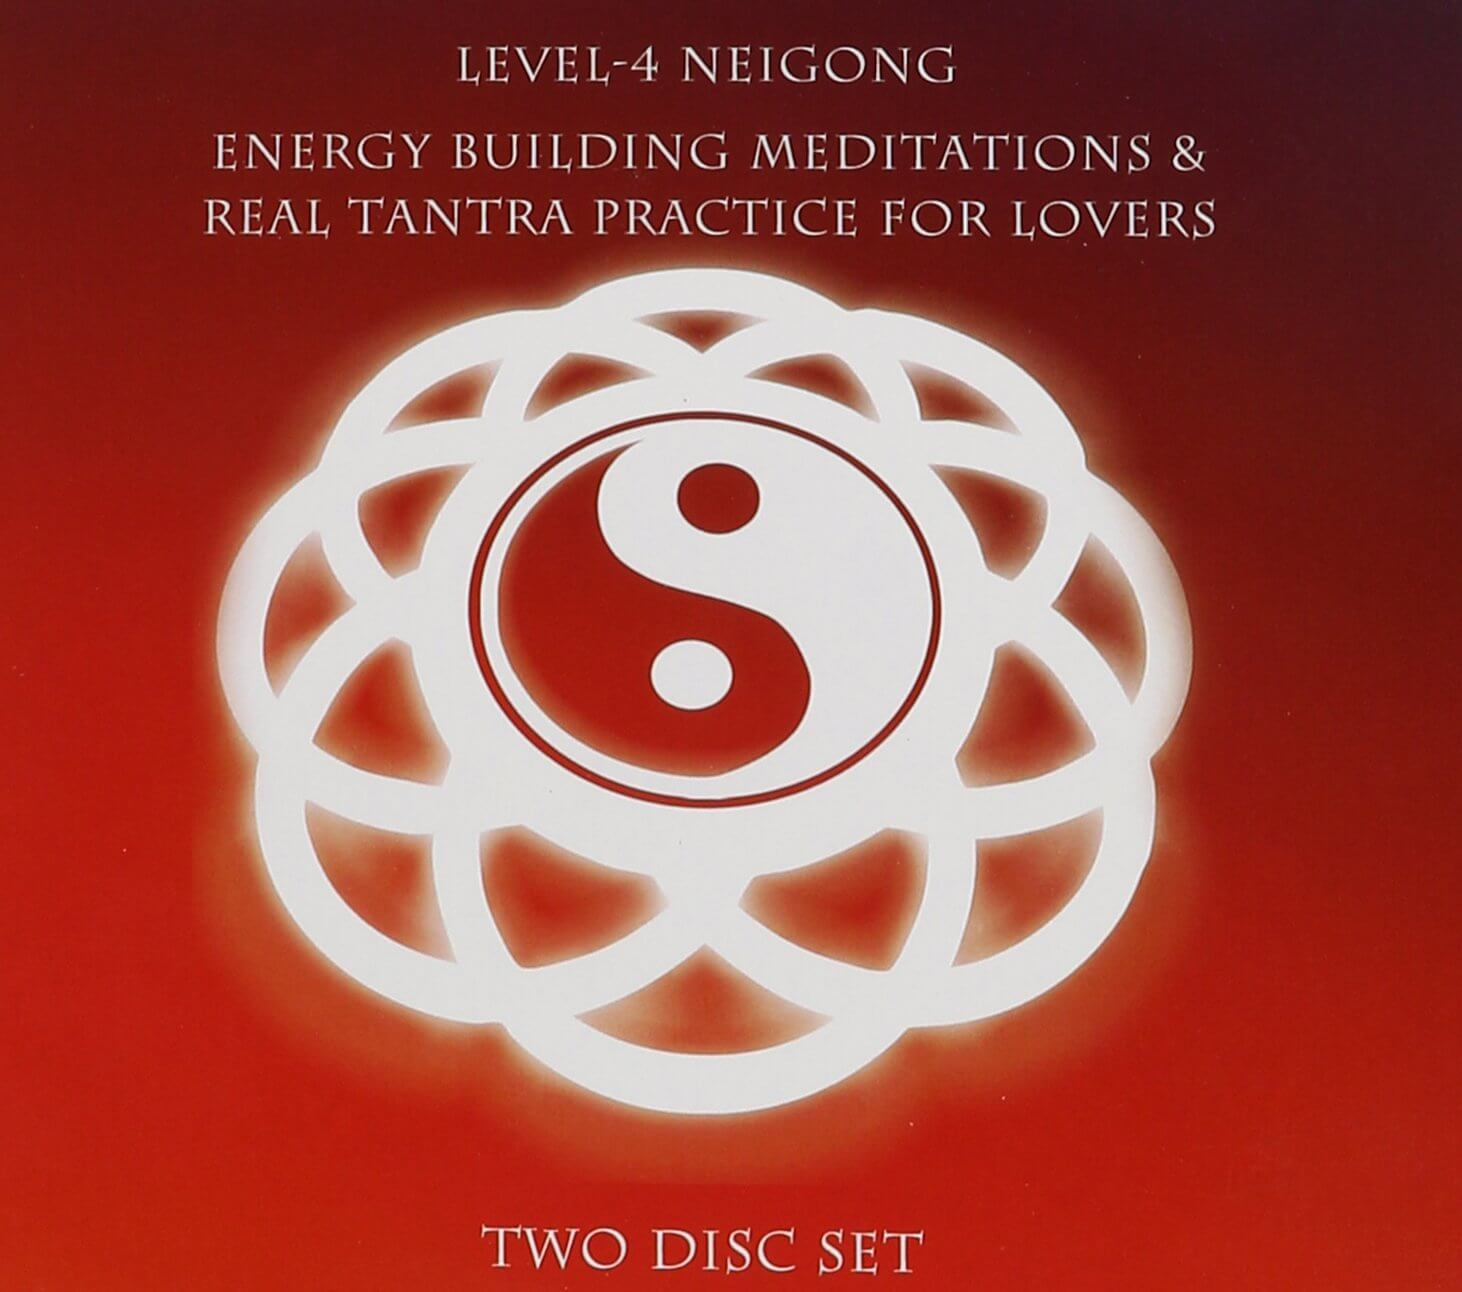 Jeff Primack - Level-4 Neigong - Energy Building Meditations and Real Tantra Practic